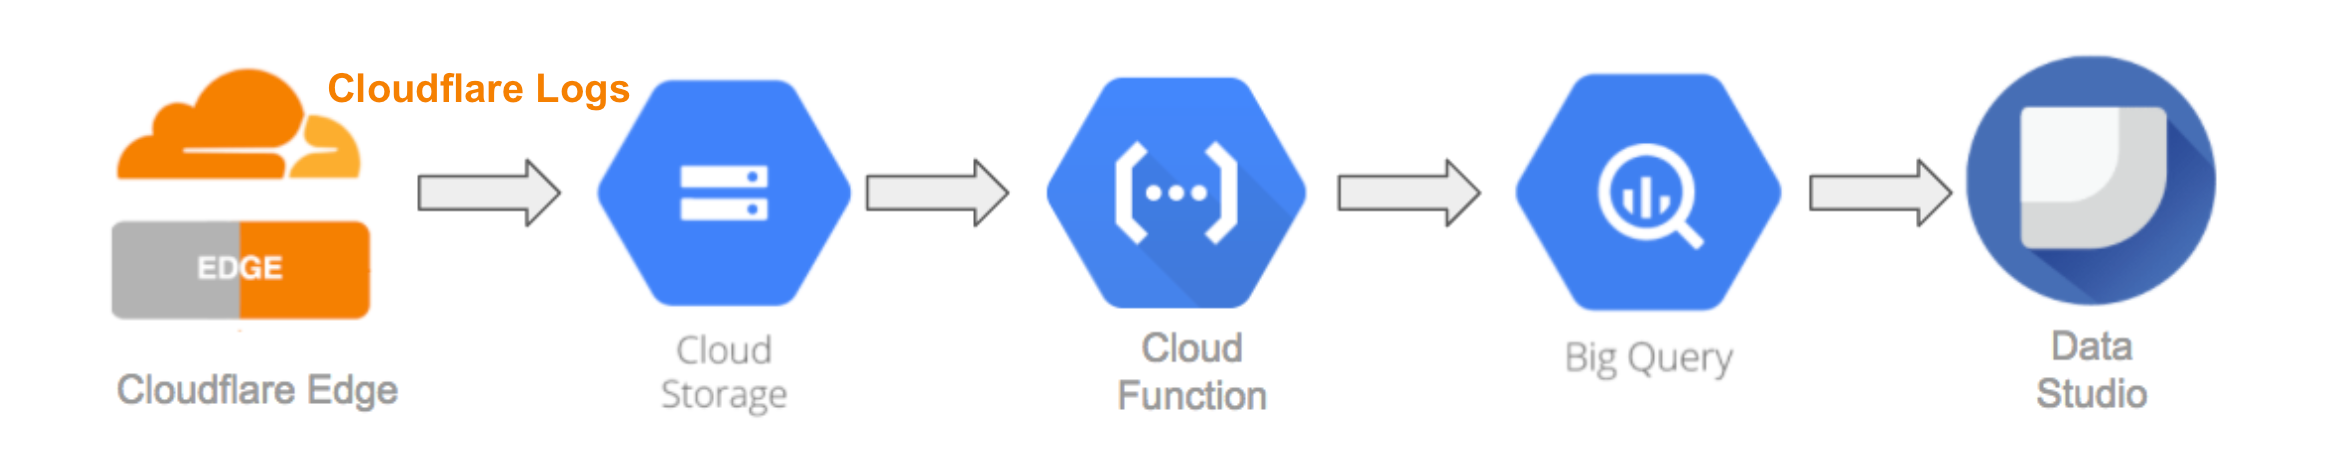 Cloudflare Logs data to Google Cloud Platform